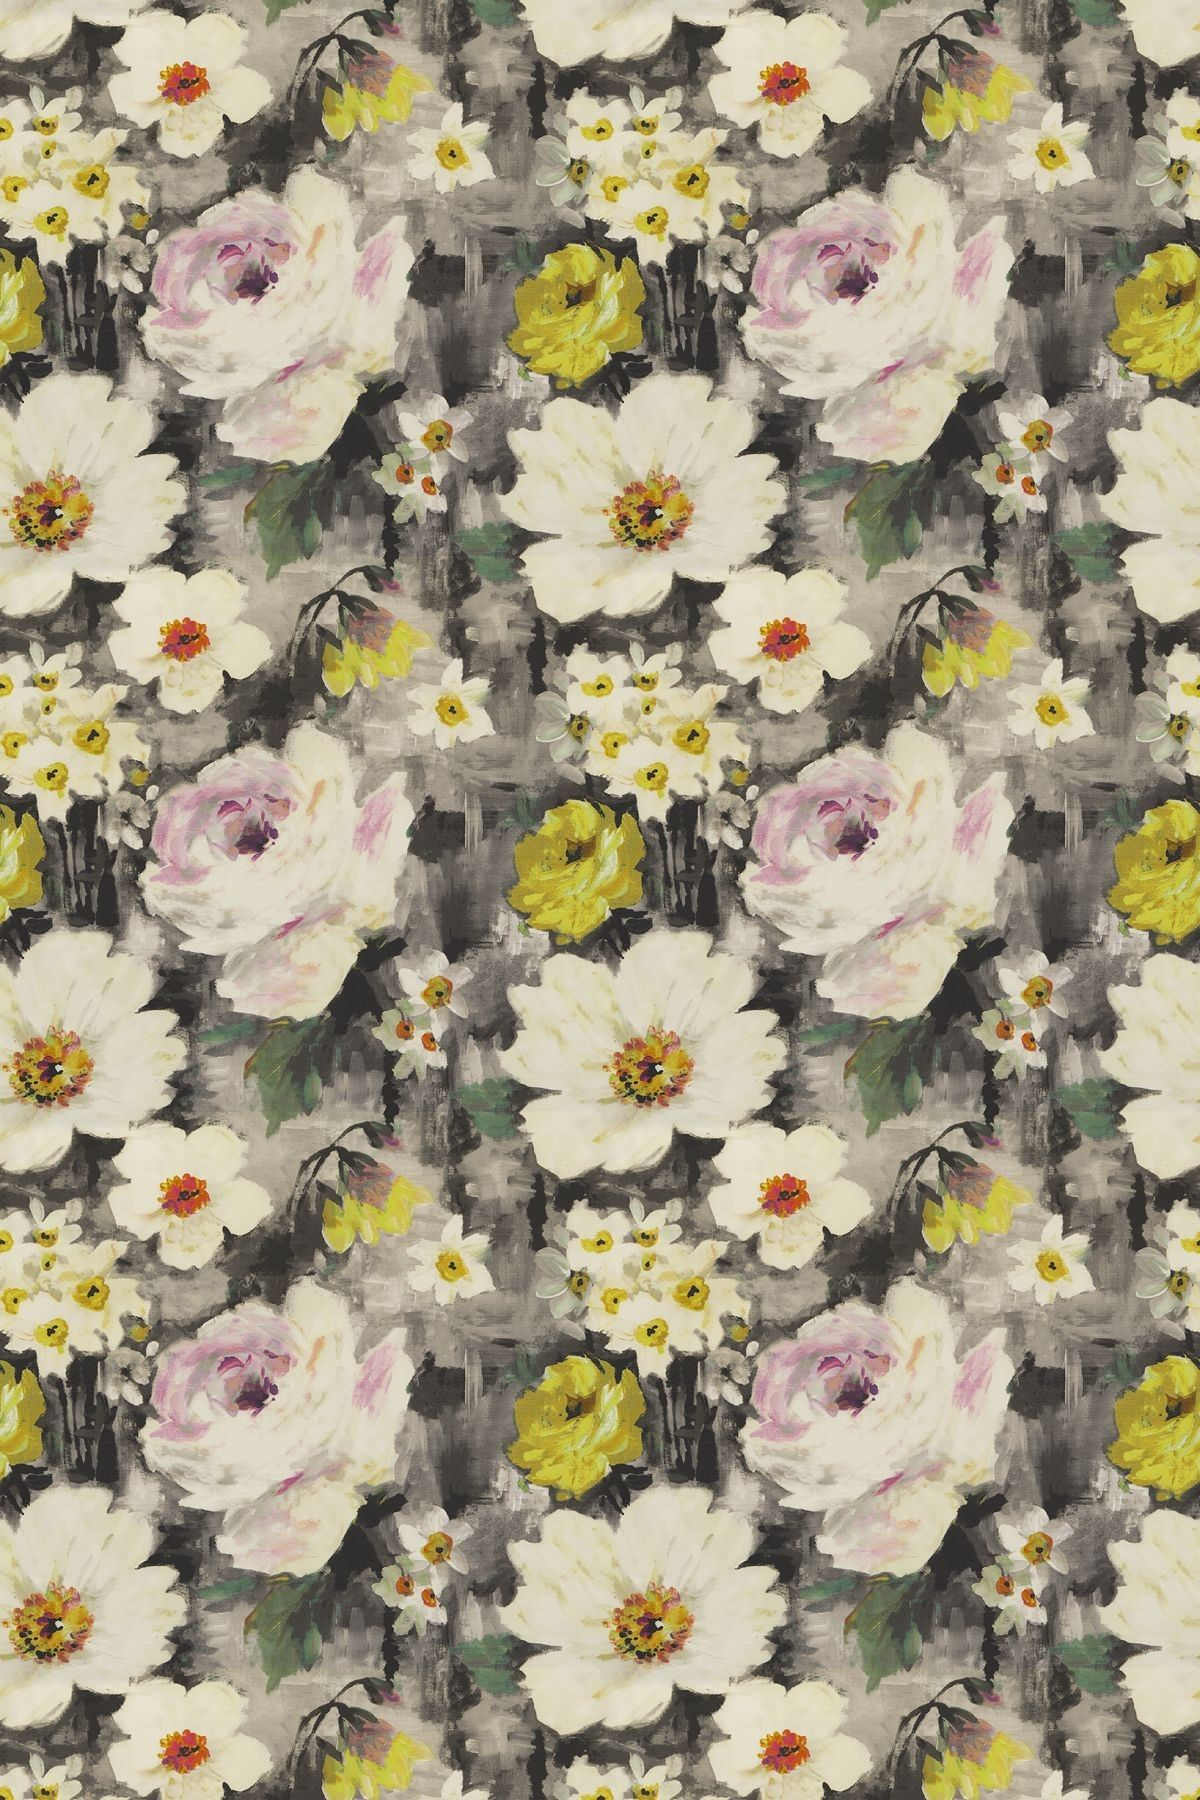 An elegant, large scale watercolor floral fabric with